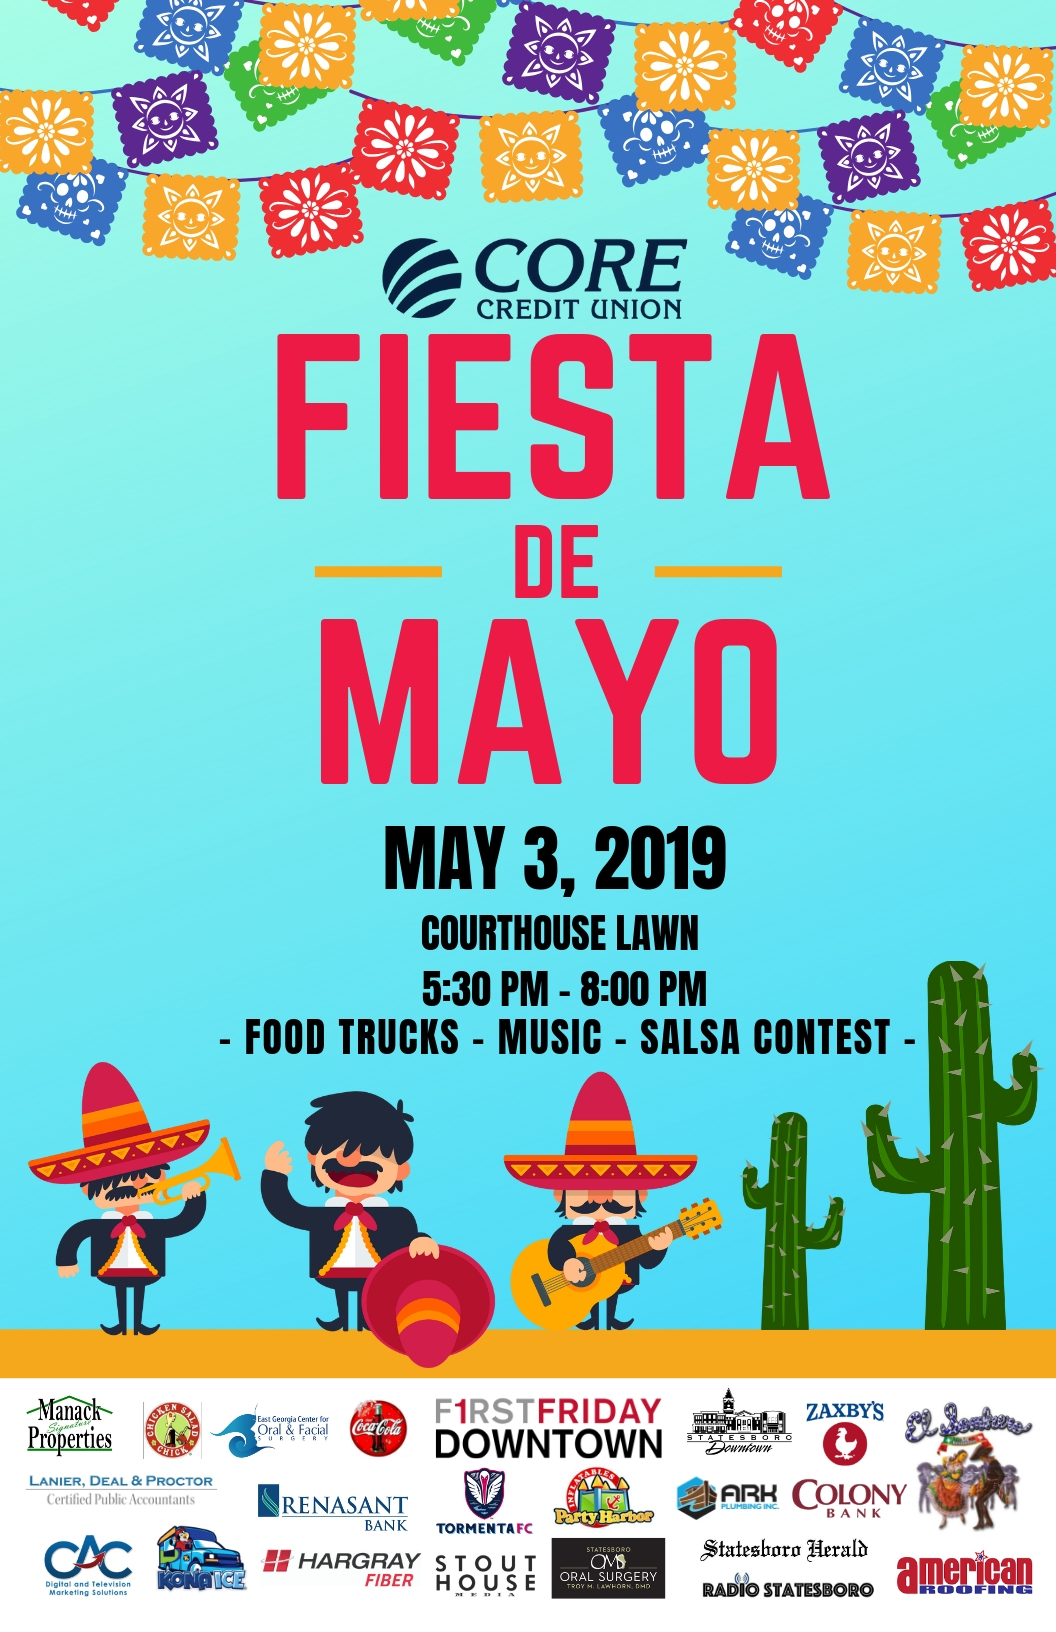 Join the Fiesta this Friday!